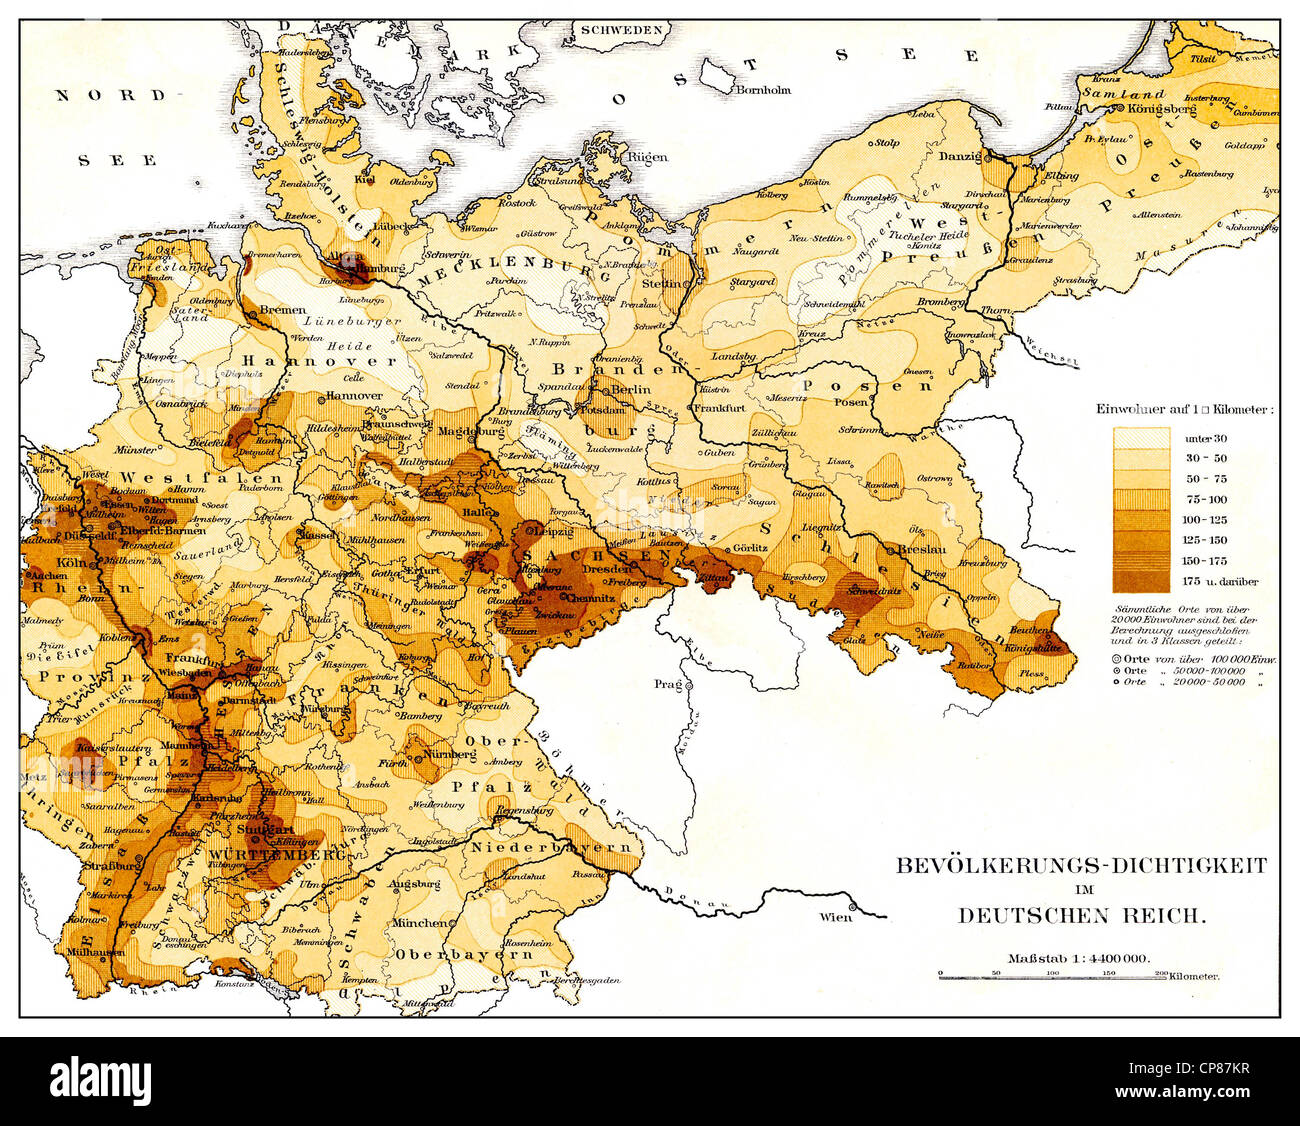 Historical map, population density in the German Reich, 19th Century, Historische, zeichnerische Darstellung, Landkarte, - Stock Image